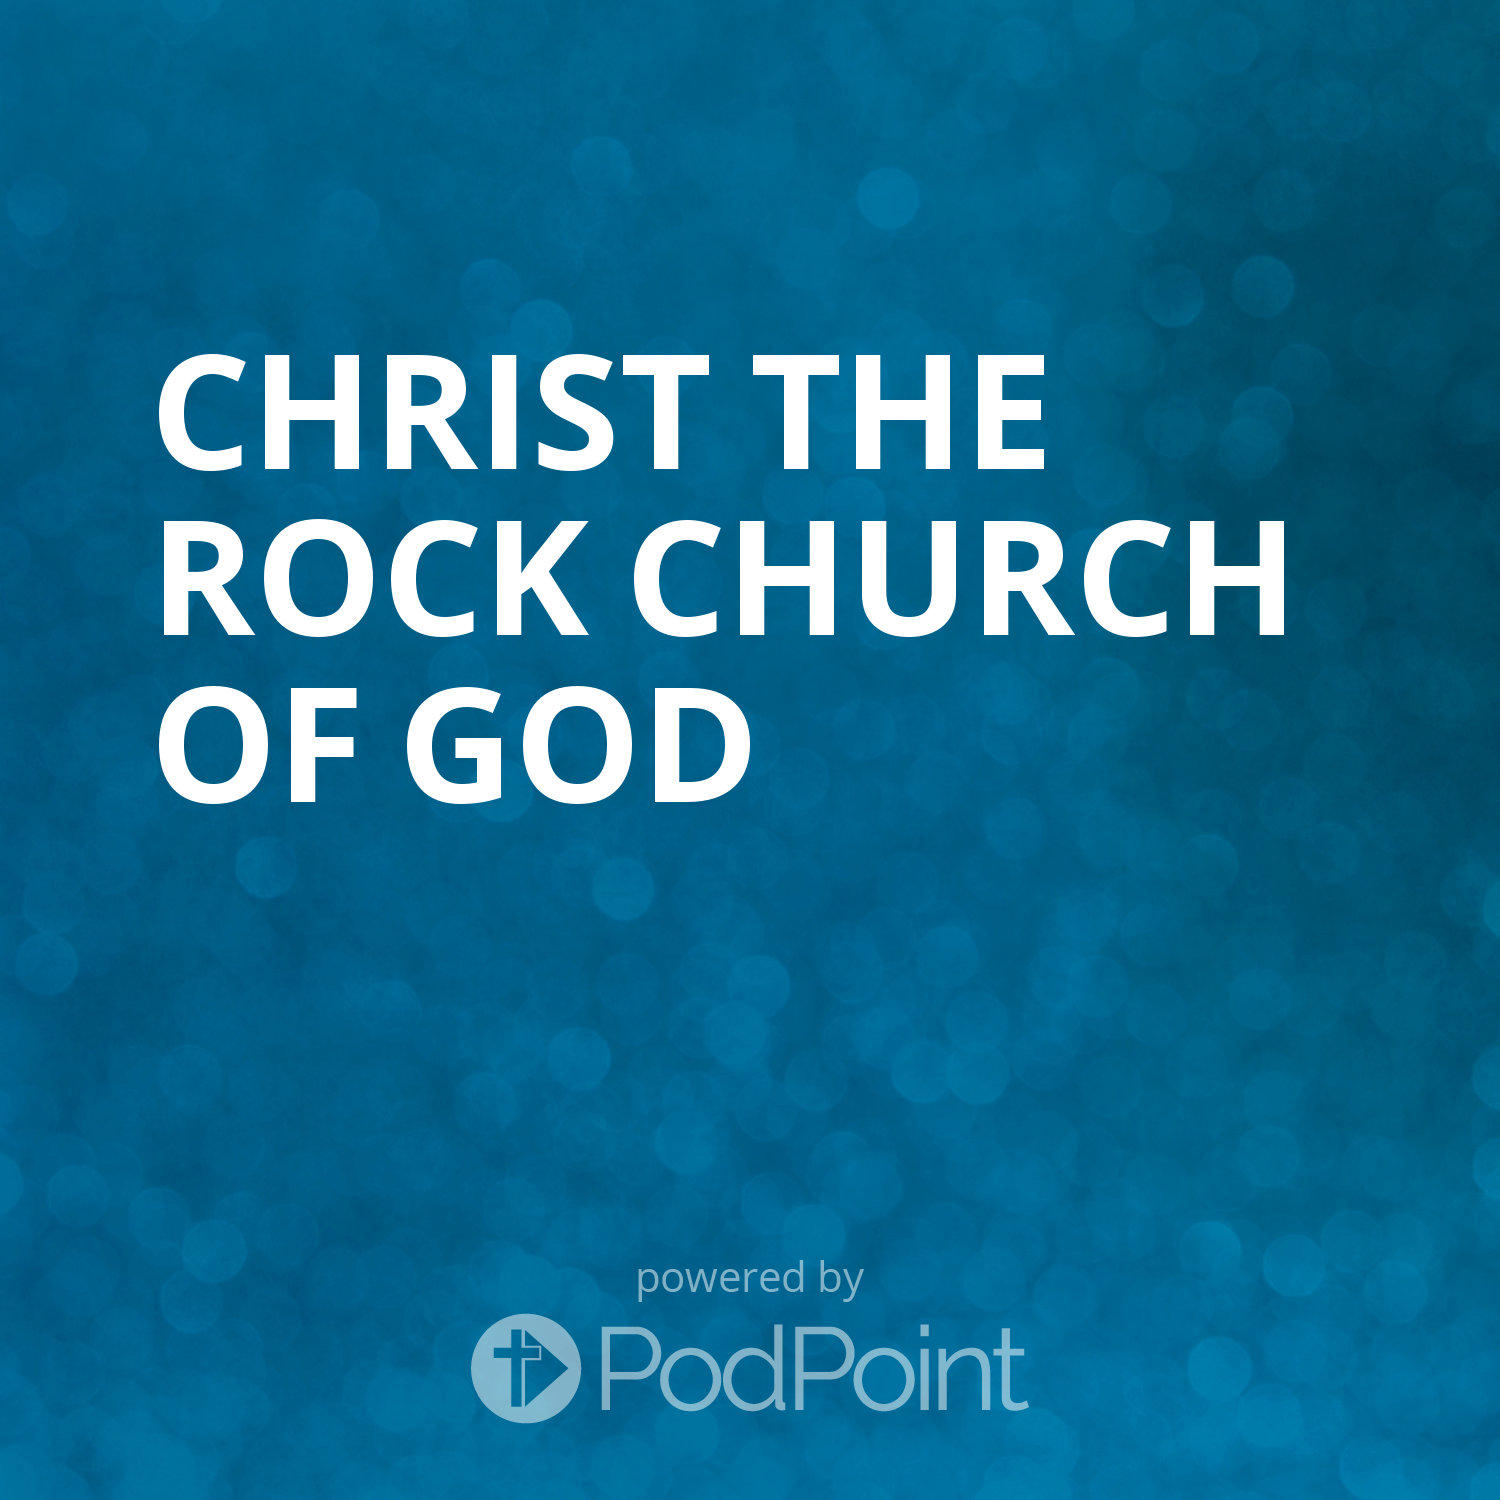 Christ the Rock Church of God